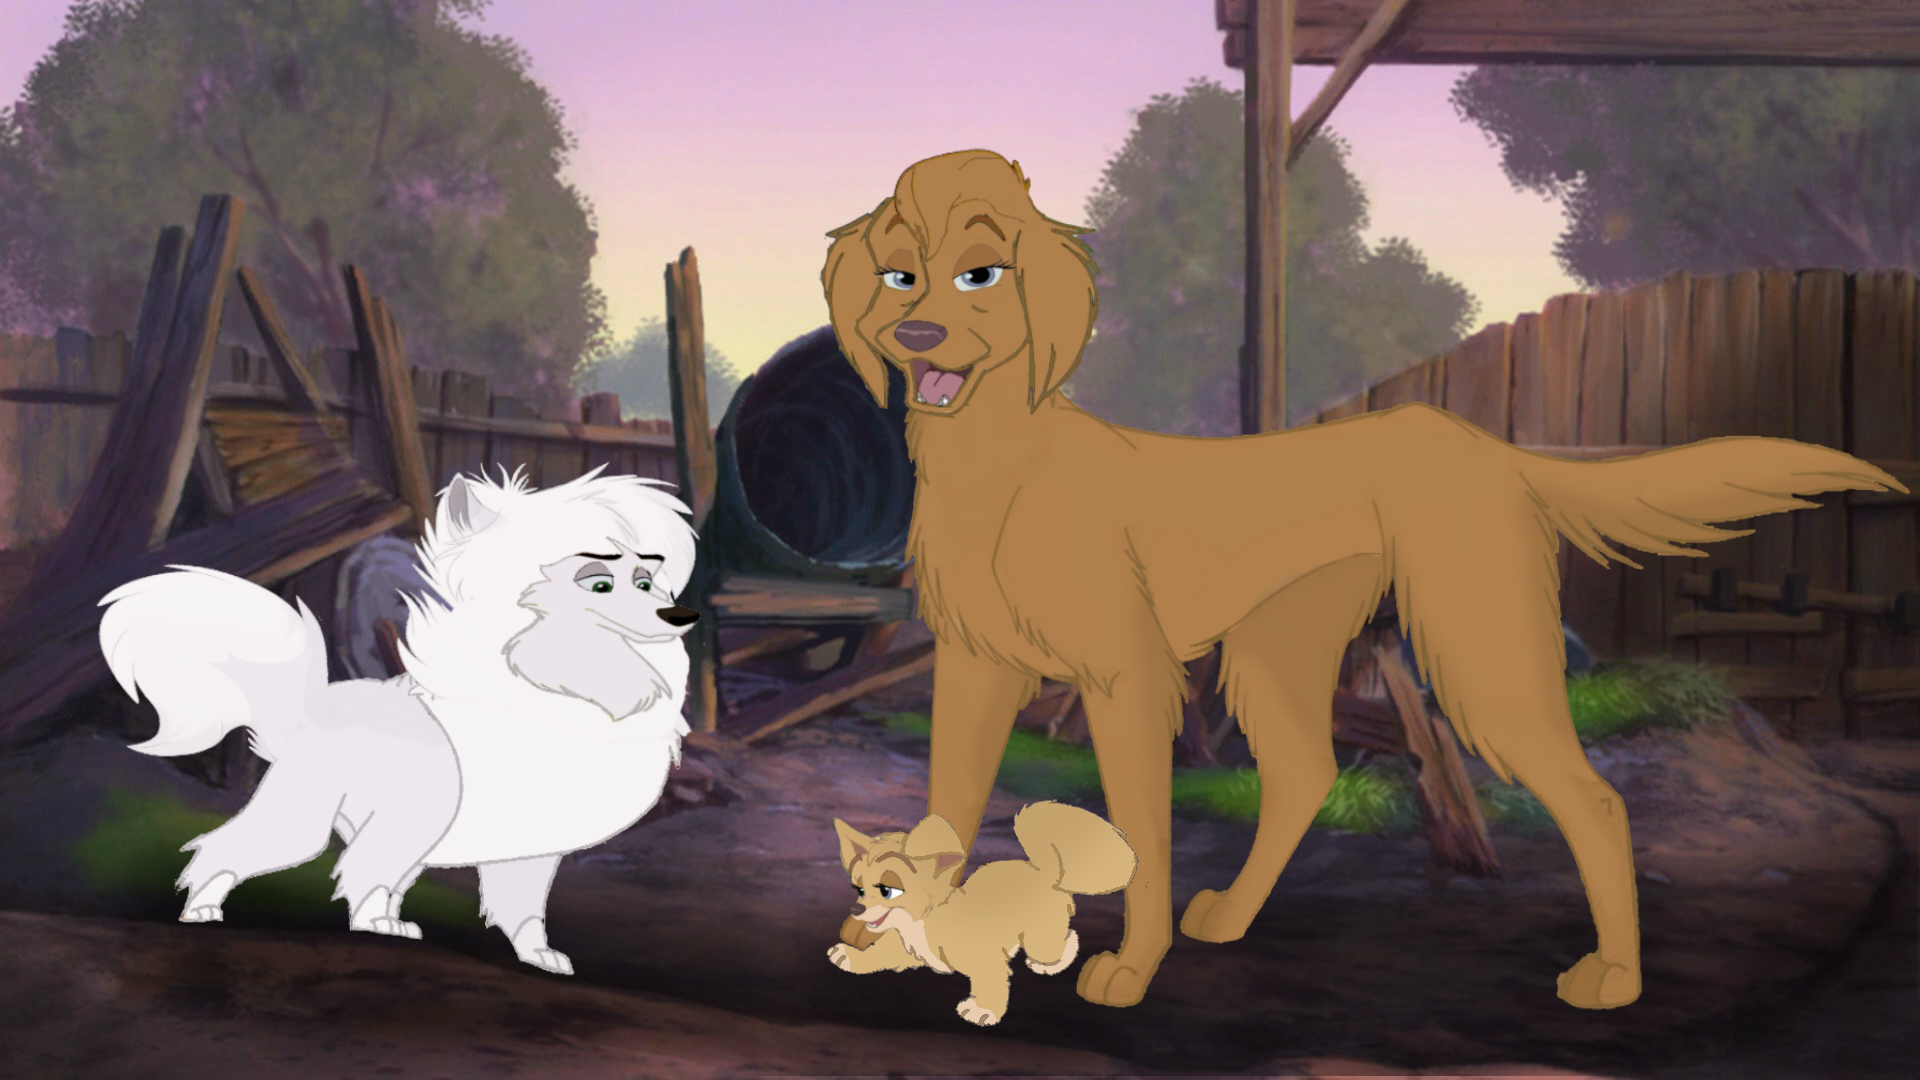 Young Angel And Her Parents Angel Lady And The Tramp 2 Fan Art 41572249 Fanpop